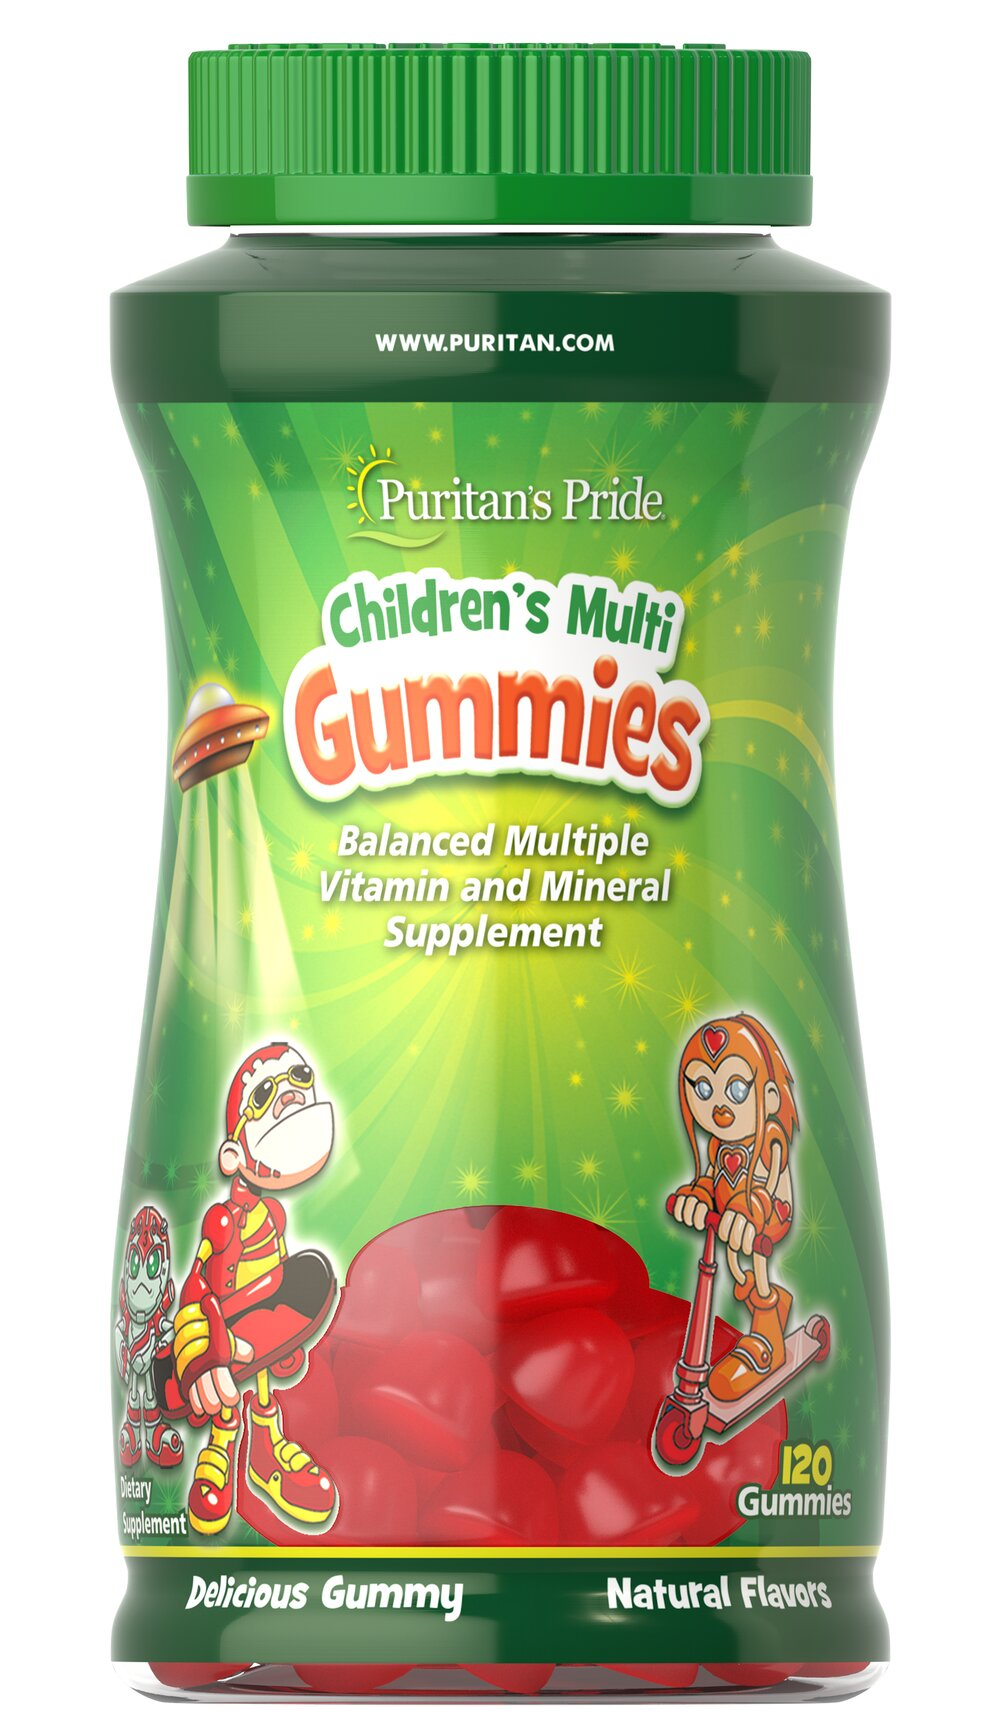 Children's Multivitamins & Mineral Gummies <p>These multivitamins gummies are packed with essential vitamins and minerals necessary for your child's healthy growth and development.** Included are Vitamin D for the bones, and Vitamins C and E for the immune system.**</p> 120 Gummies  $19.99